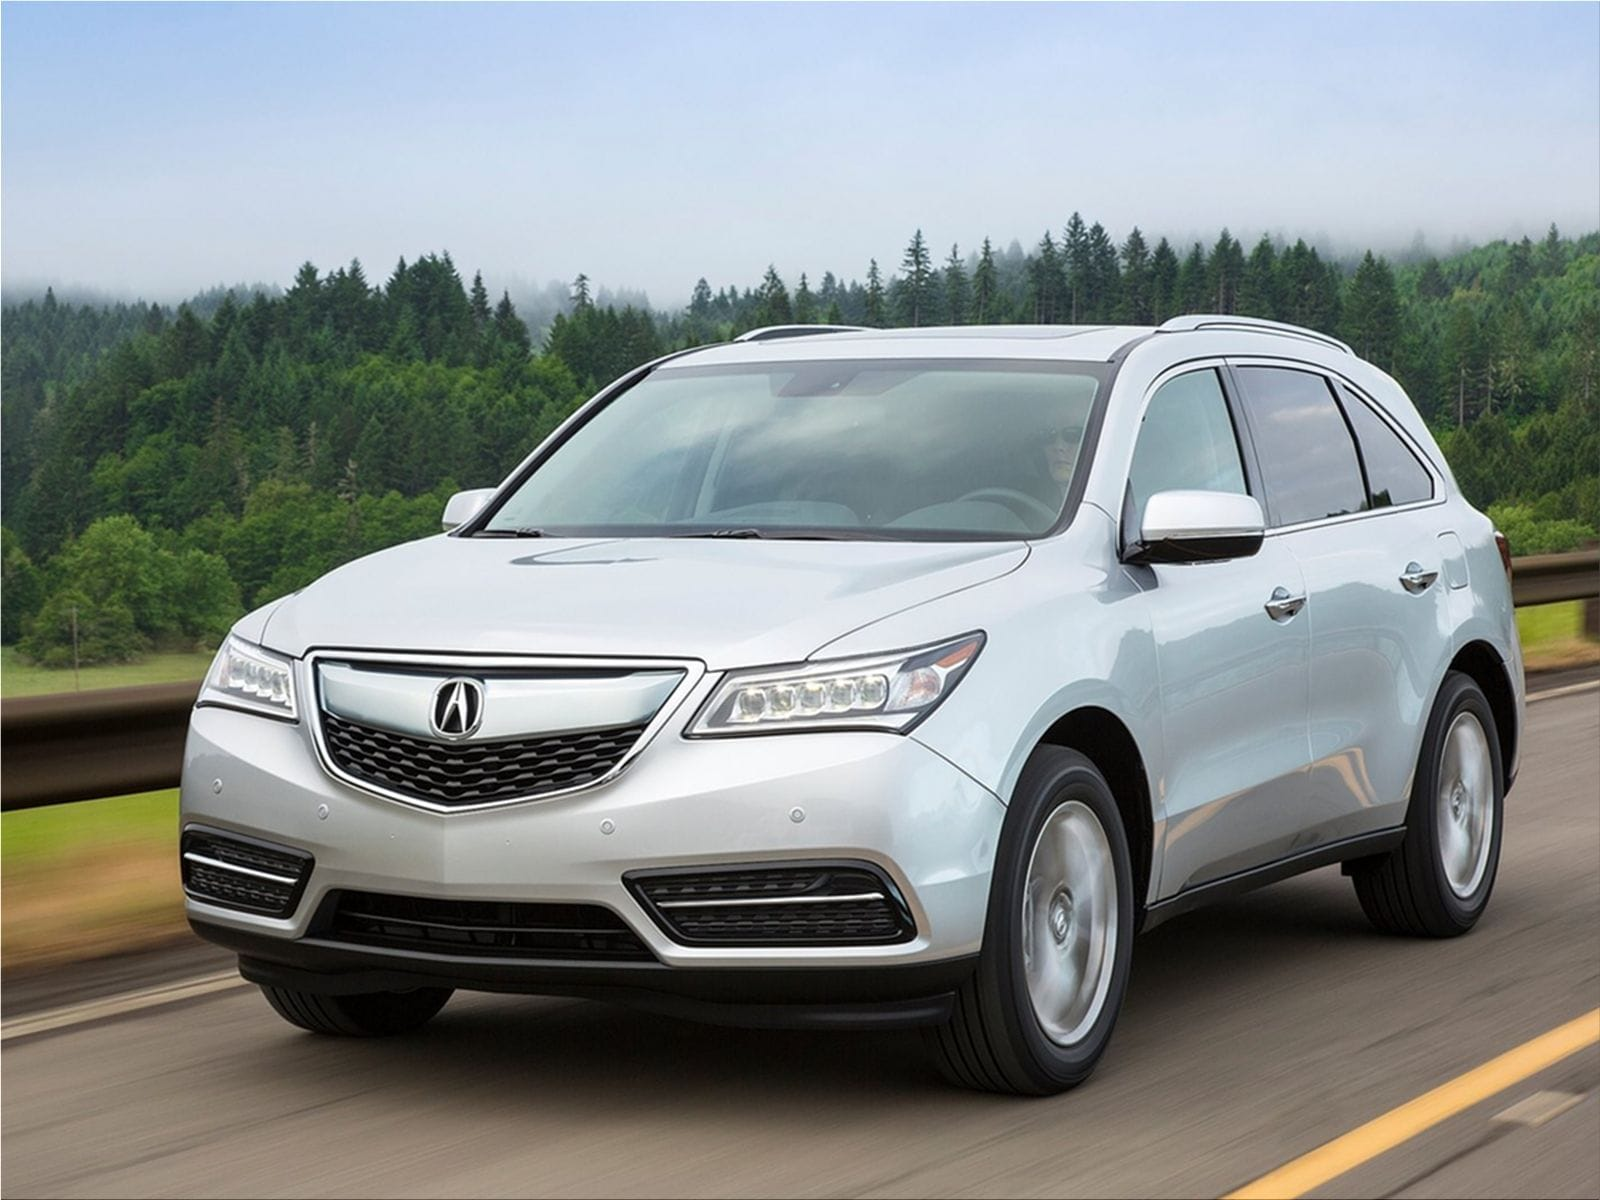 Mdx For Sale >> 2014 Acura MDX seven-seat luxury SUV|Acura car pictures